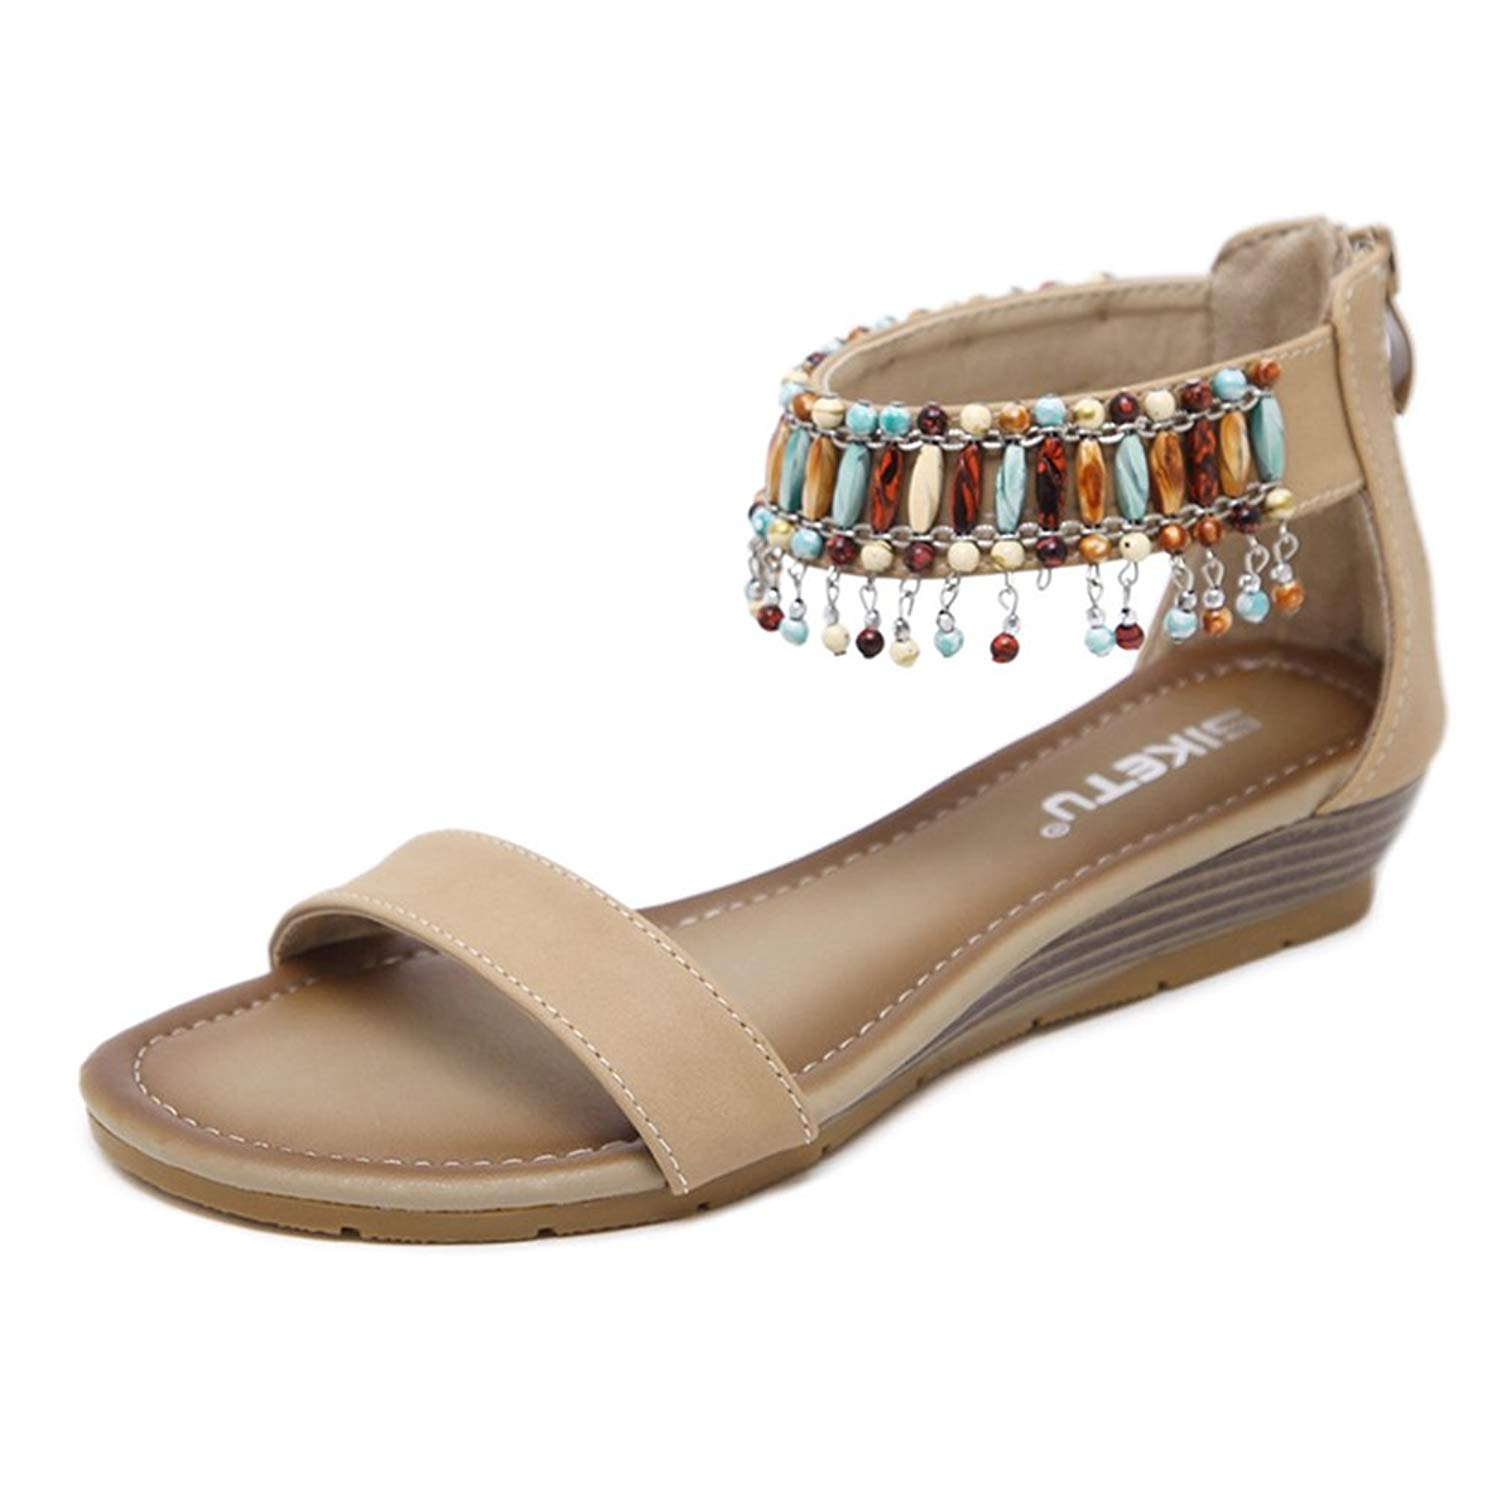 Cheap Wedge Gladiator Find Wedge Gladiator Deals On Line